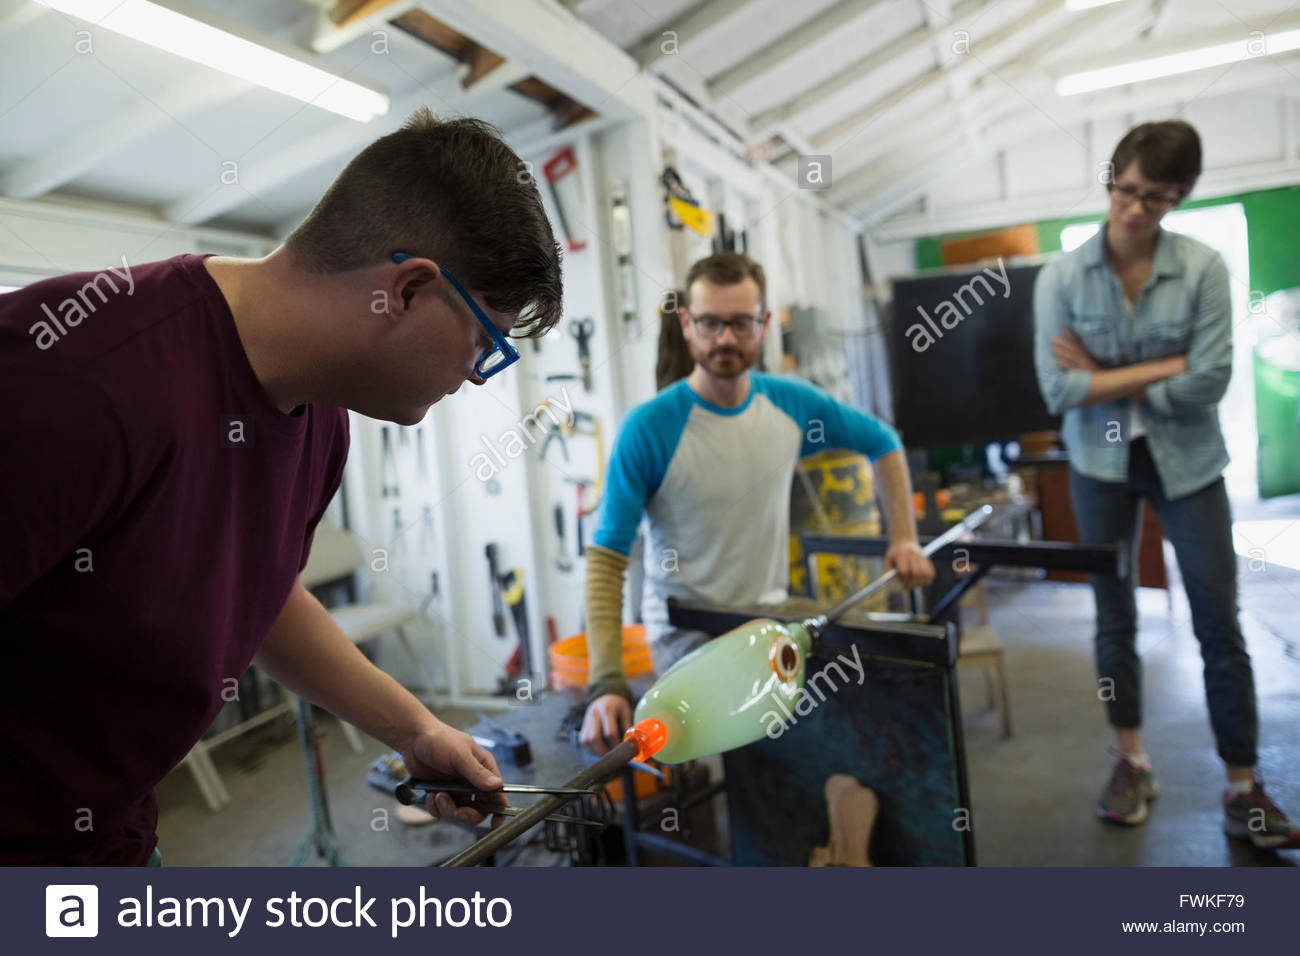 Glassblowers shaping molten glass in workshop - Stock Image